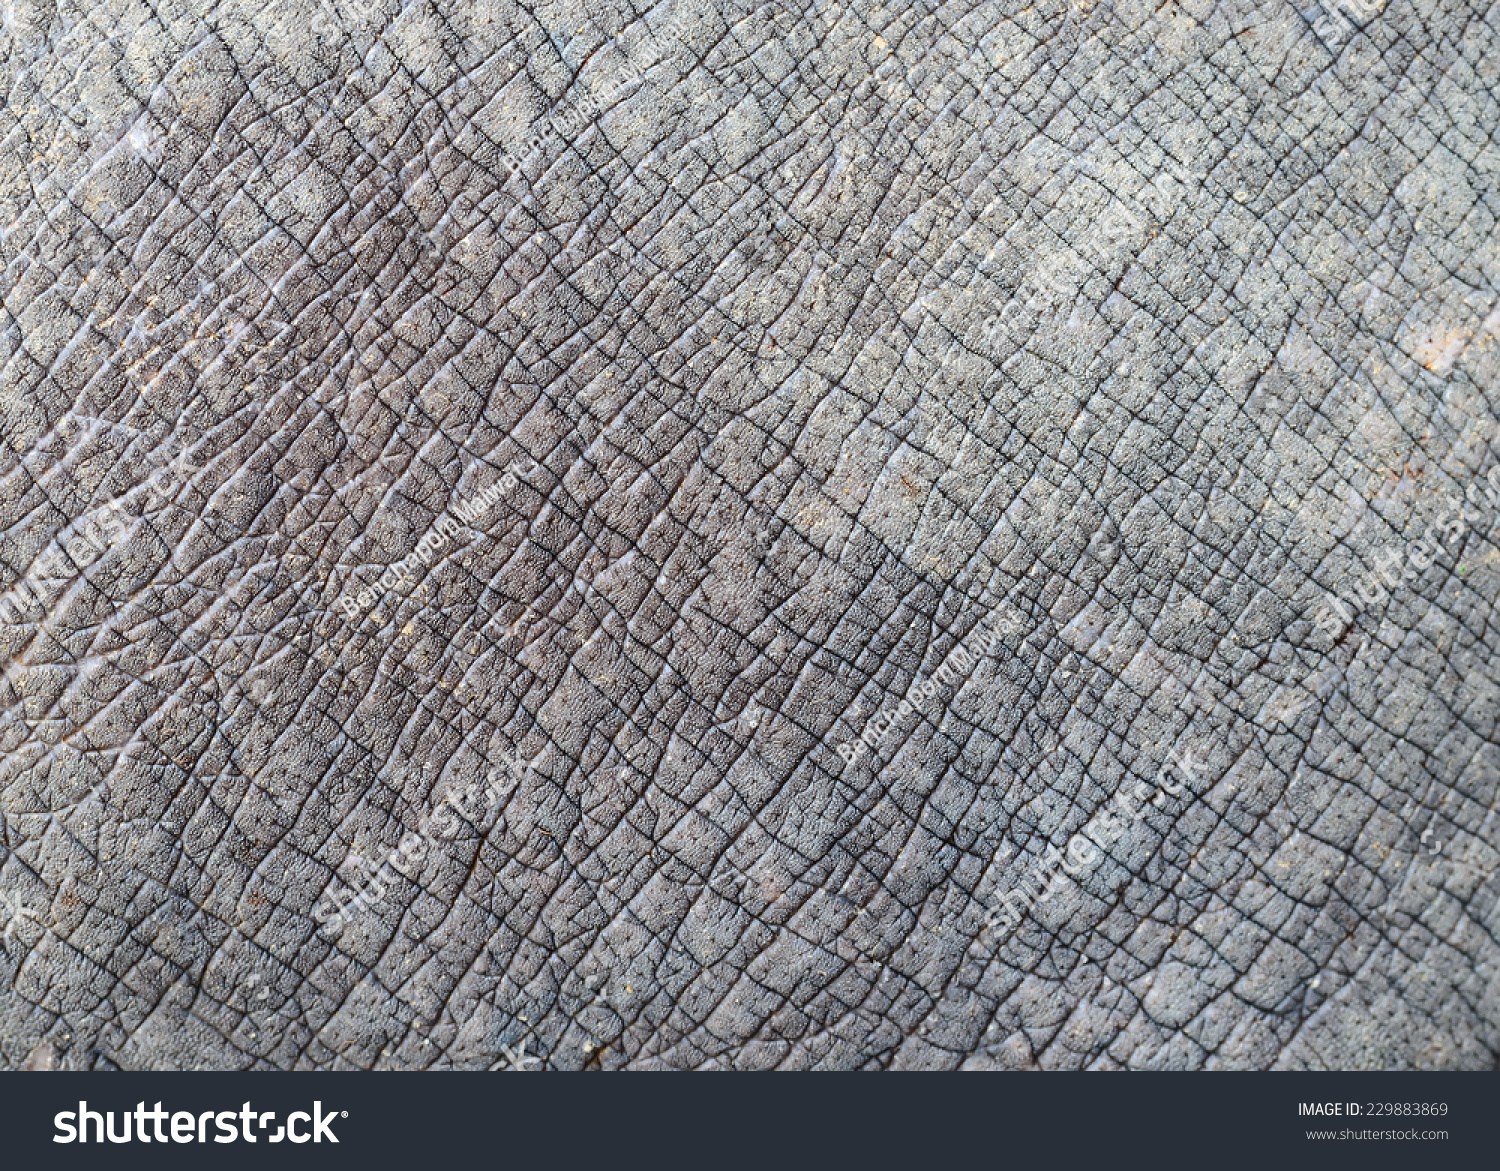 White Rhino Skin Texture Stock Photo 229883869 : Shutterstock